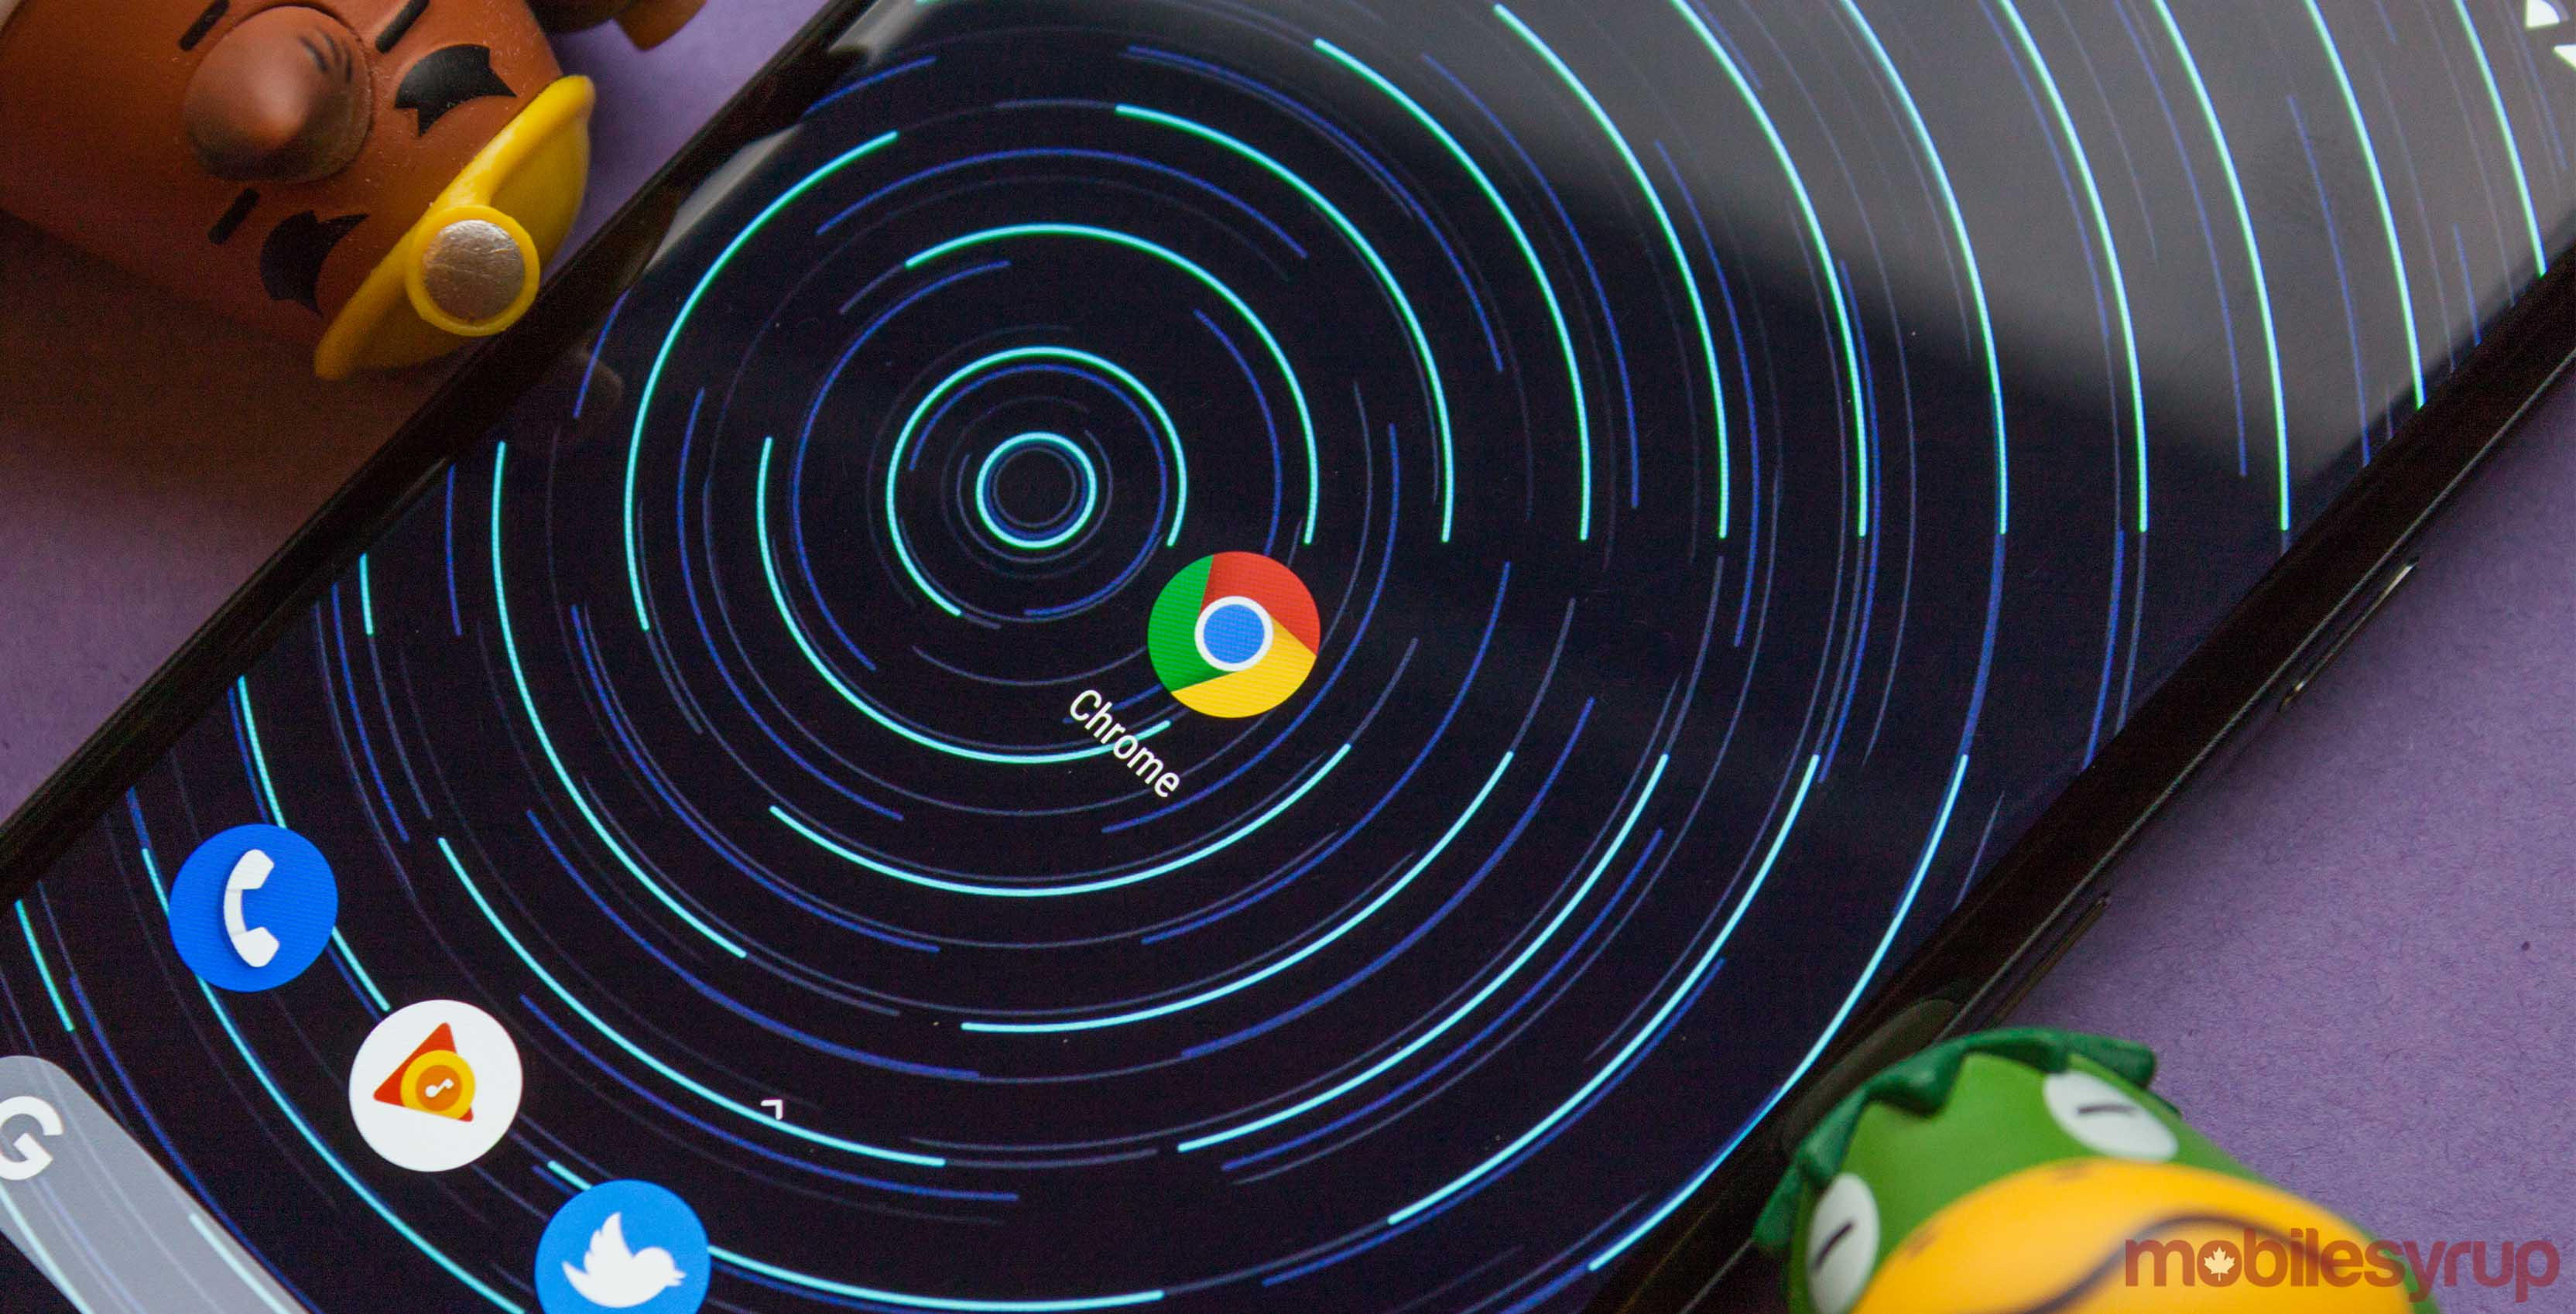 Chrome will start warning users about shady mobile subscription pages